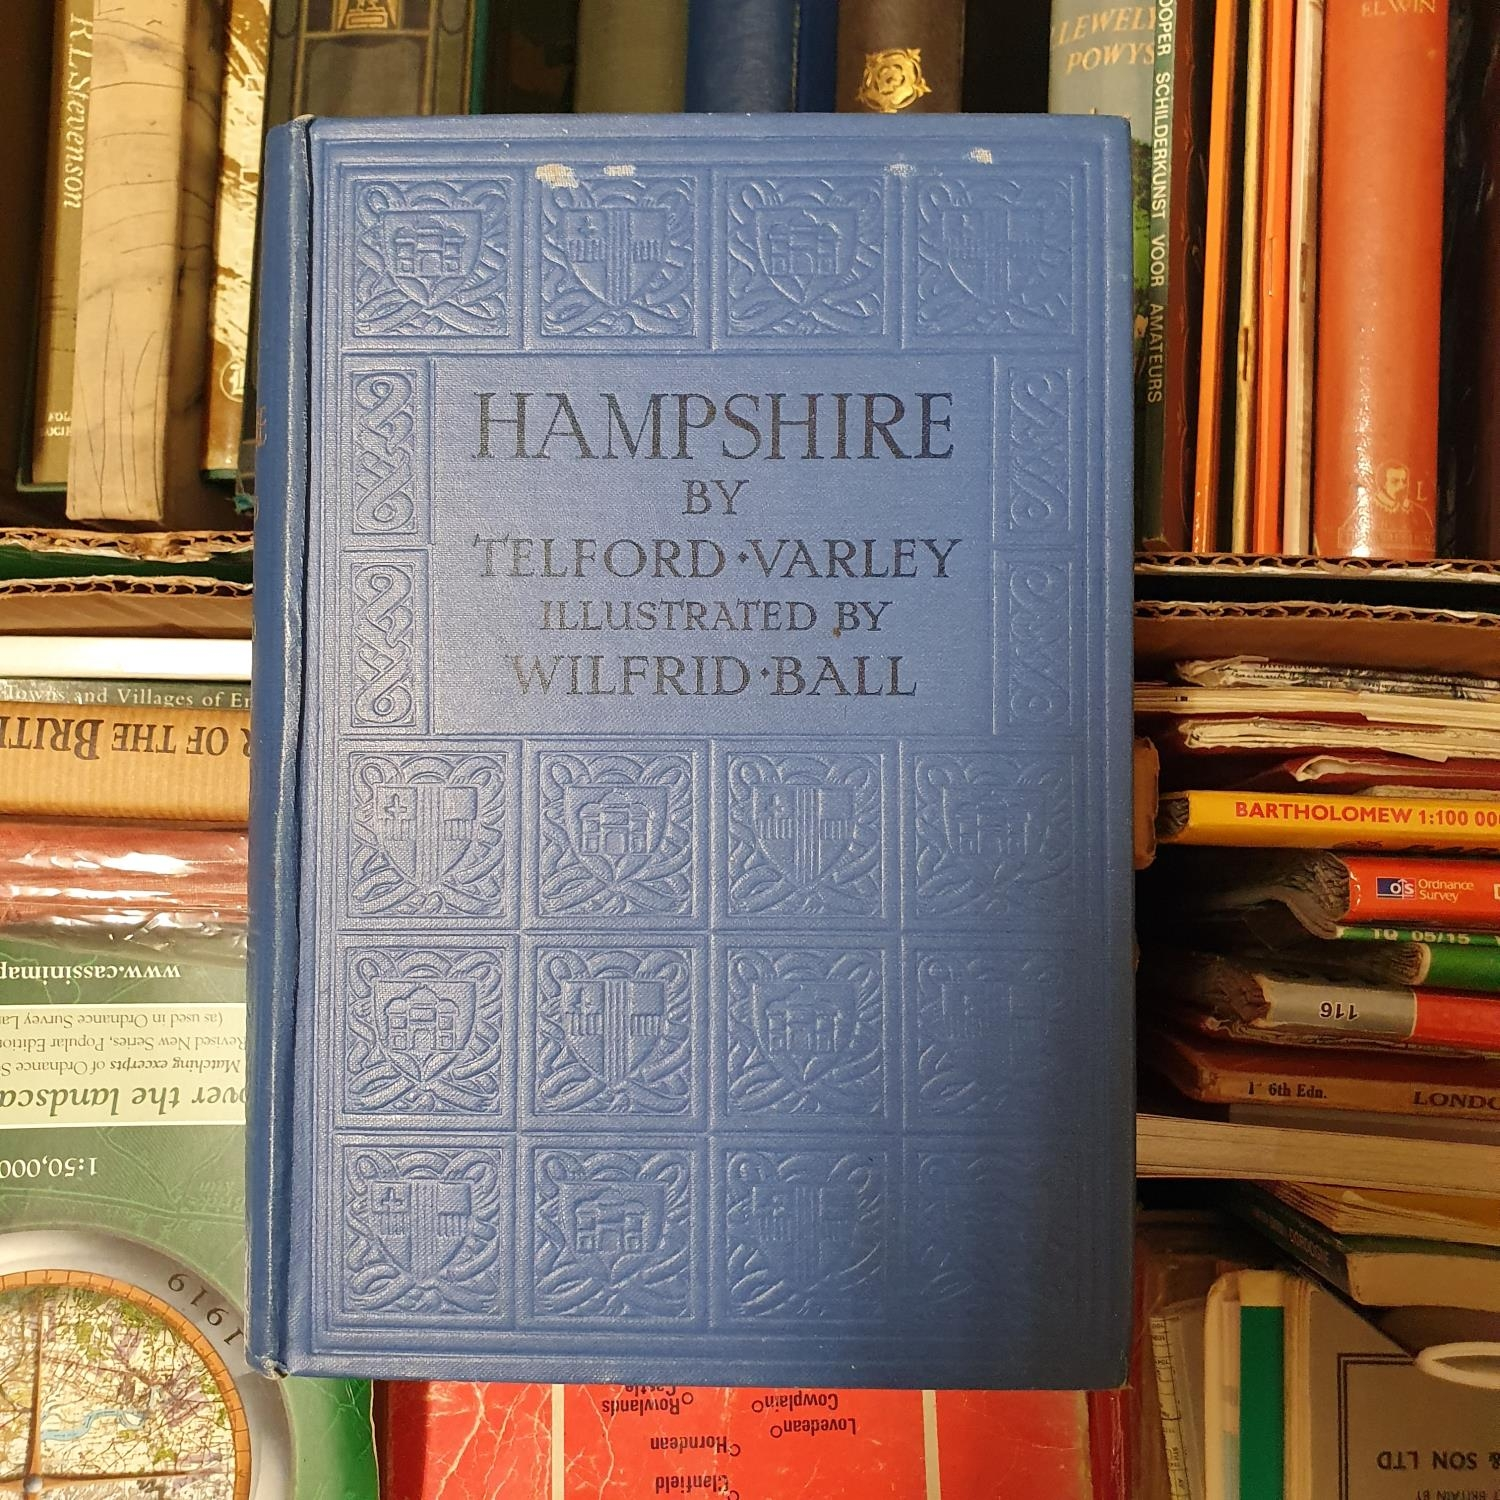 Varley (Telford) Hampshire, and various other books and maps (4 boxes)